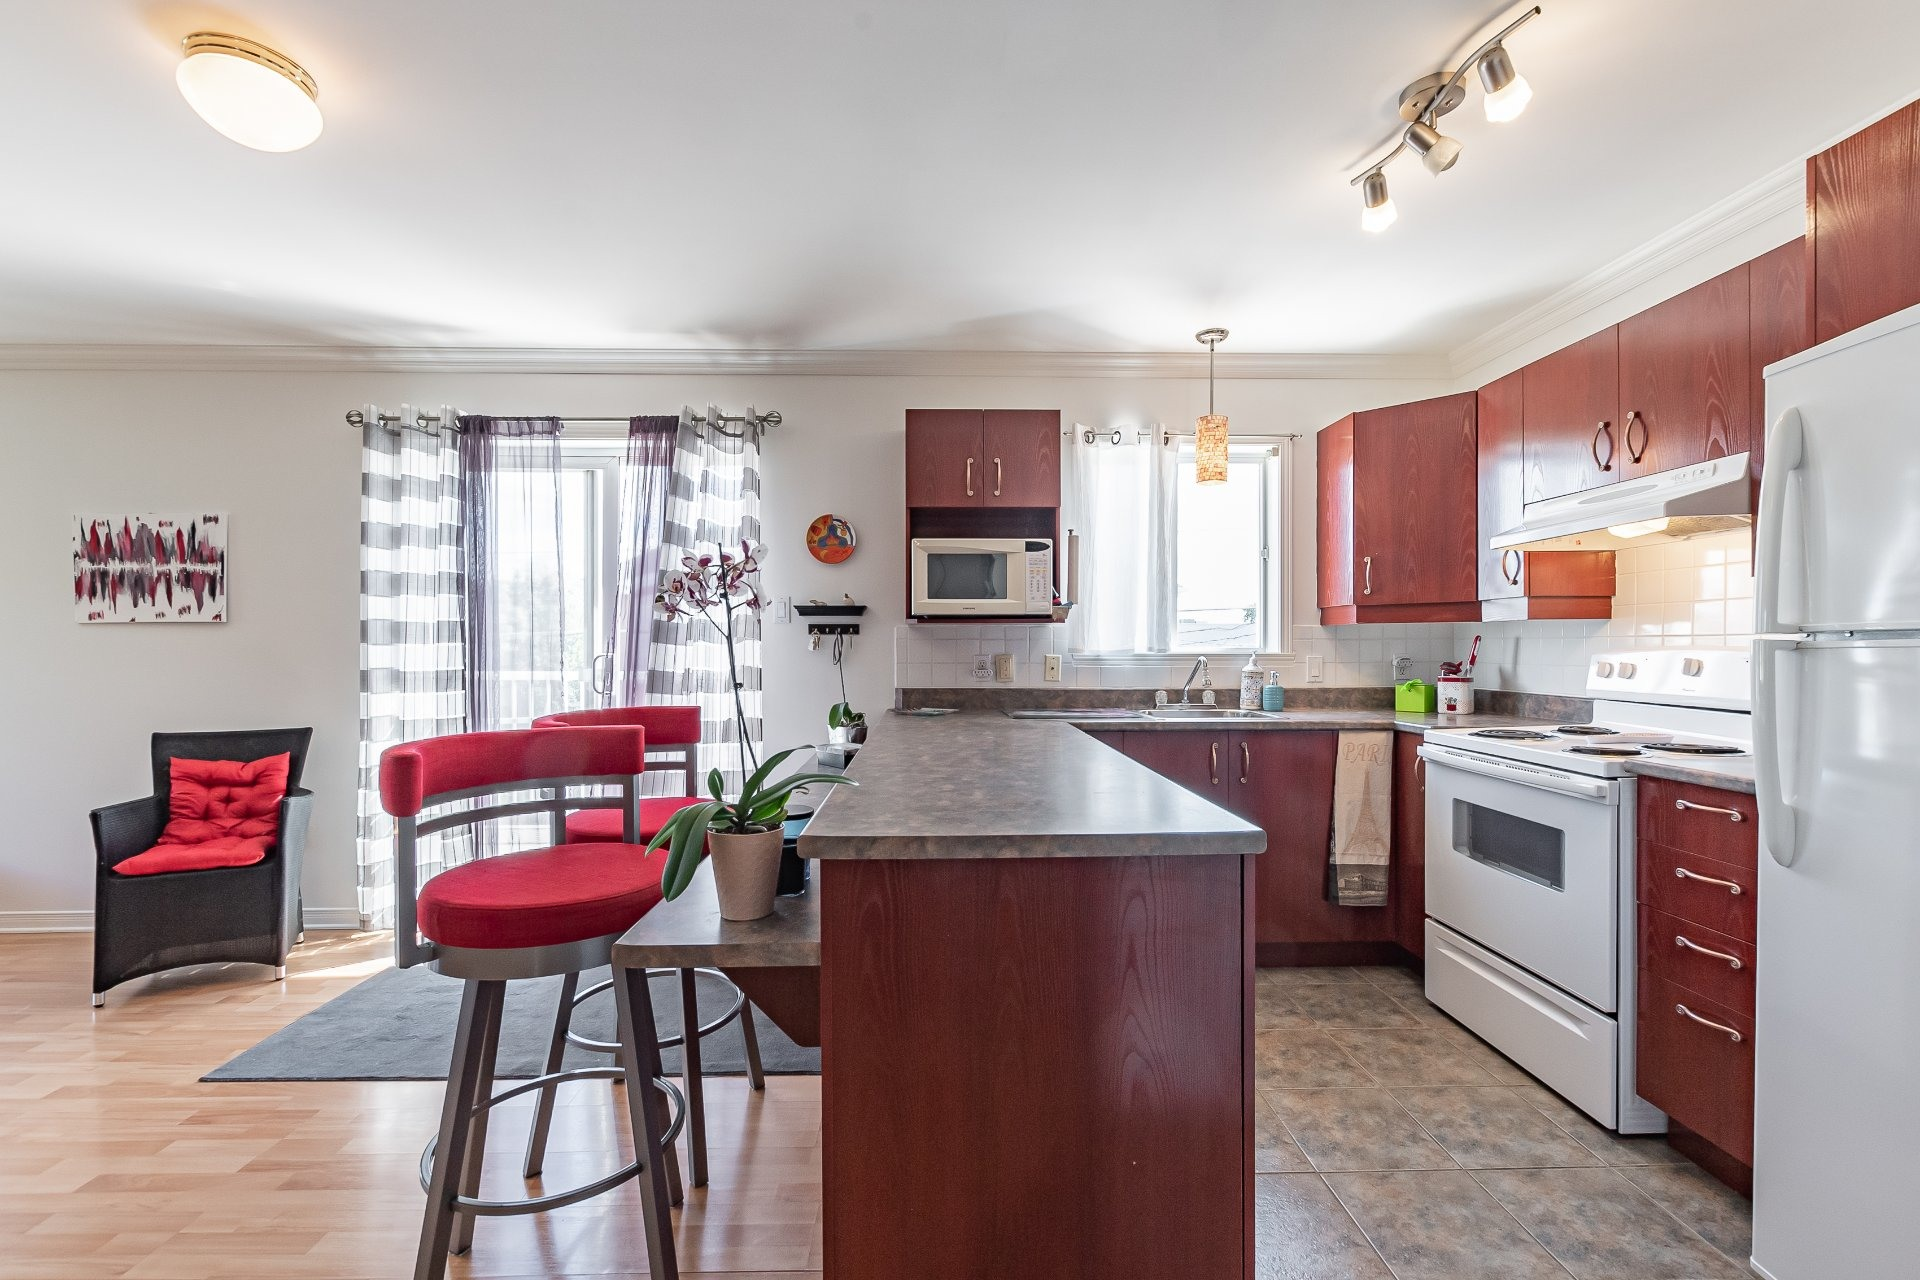 image 9 - Apartment For sale Sainte-Catherine - 5 rooms